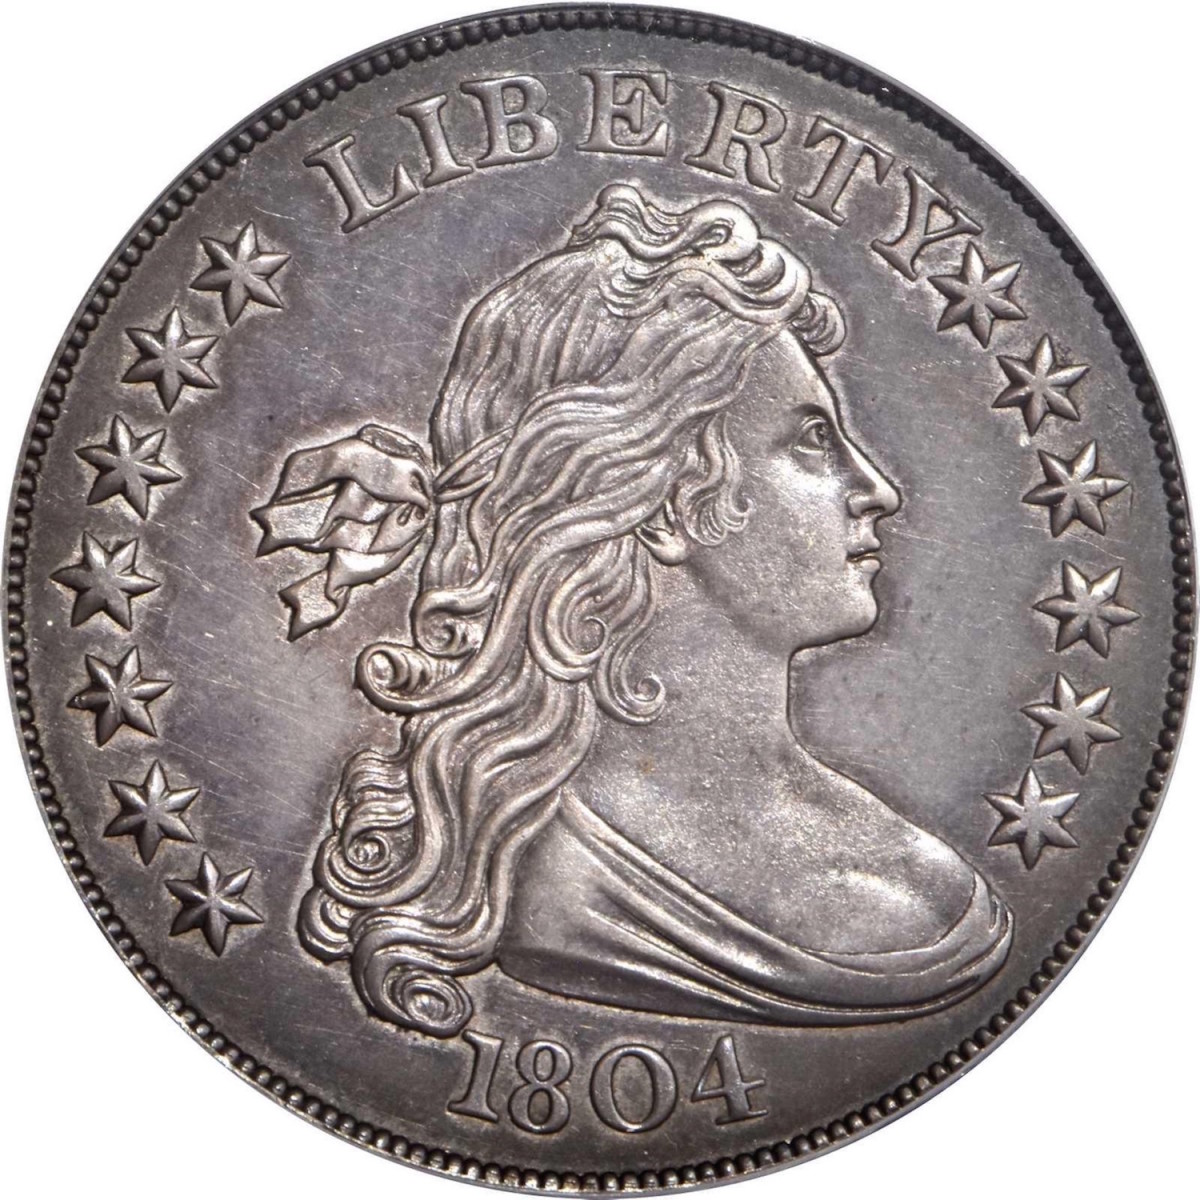 The most valuable U.S. rare coin sold at auction in 2020 was this 1804-dated silver dollar for $3,360,000. Photo courtesy of Stack's Bowers Galleries.